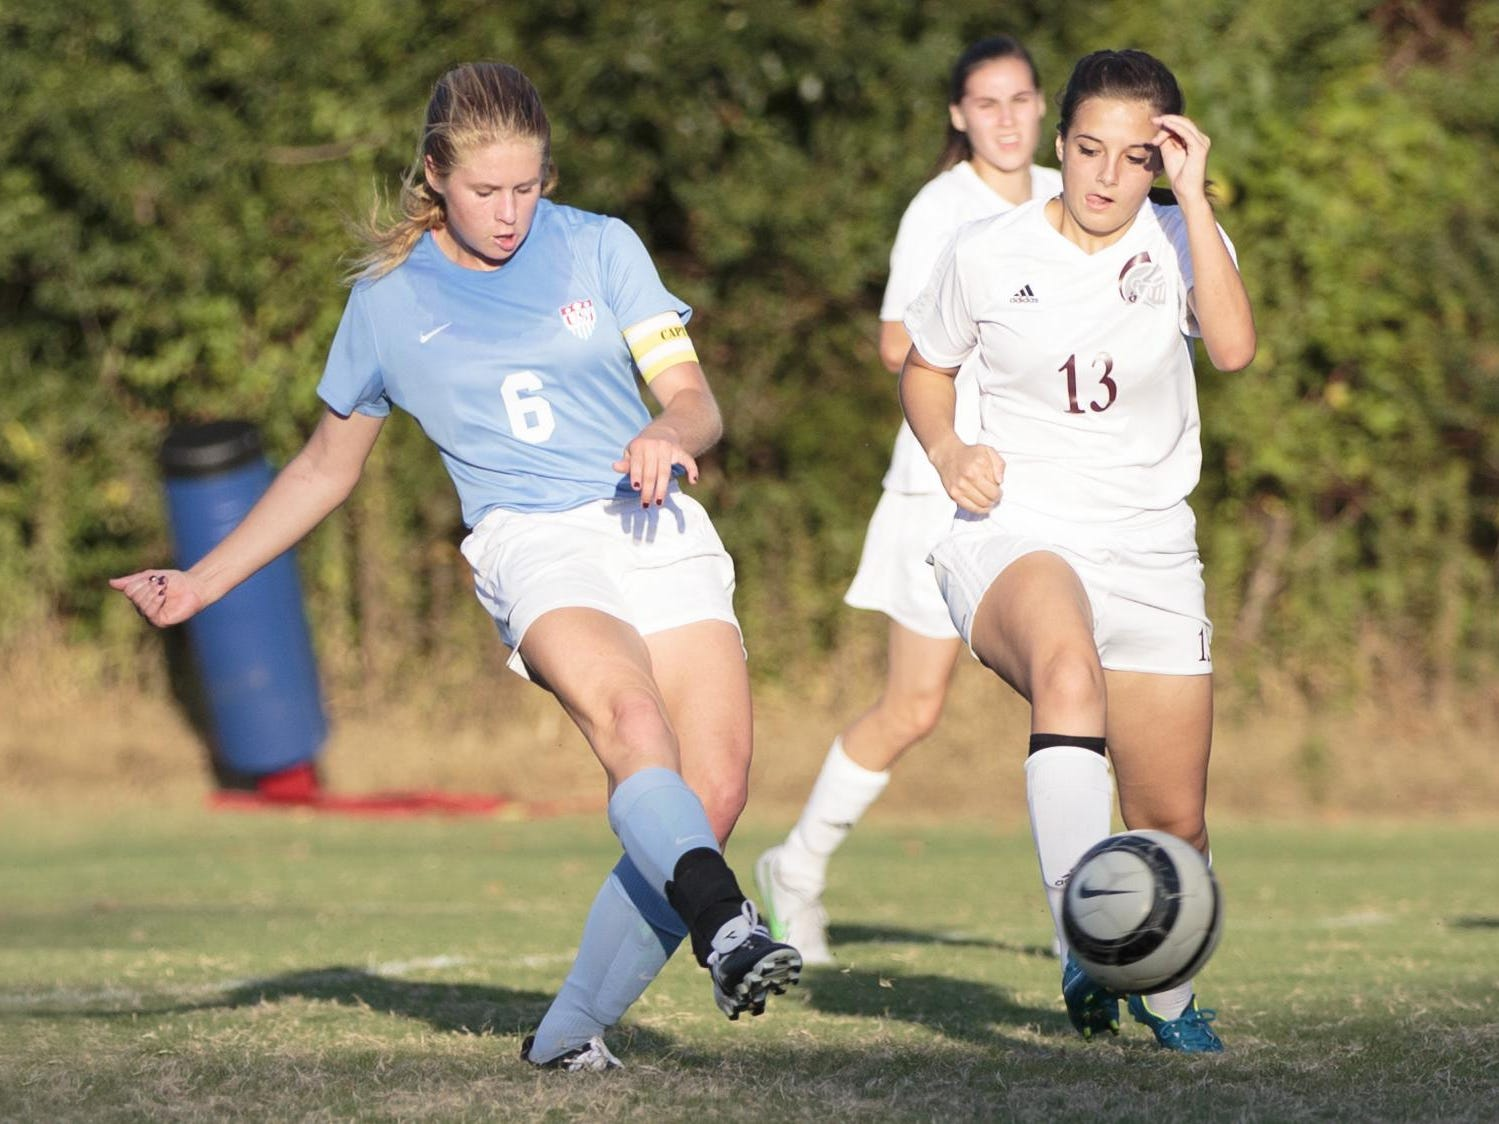 USJ's Addison Dunn is only current girls' soccer player in West Tennessee with a state championship.